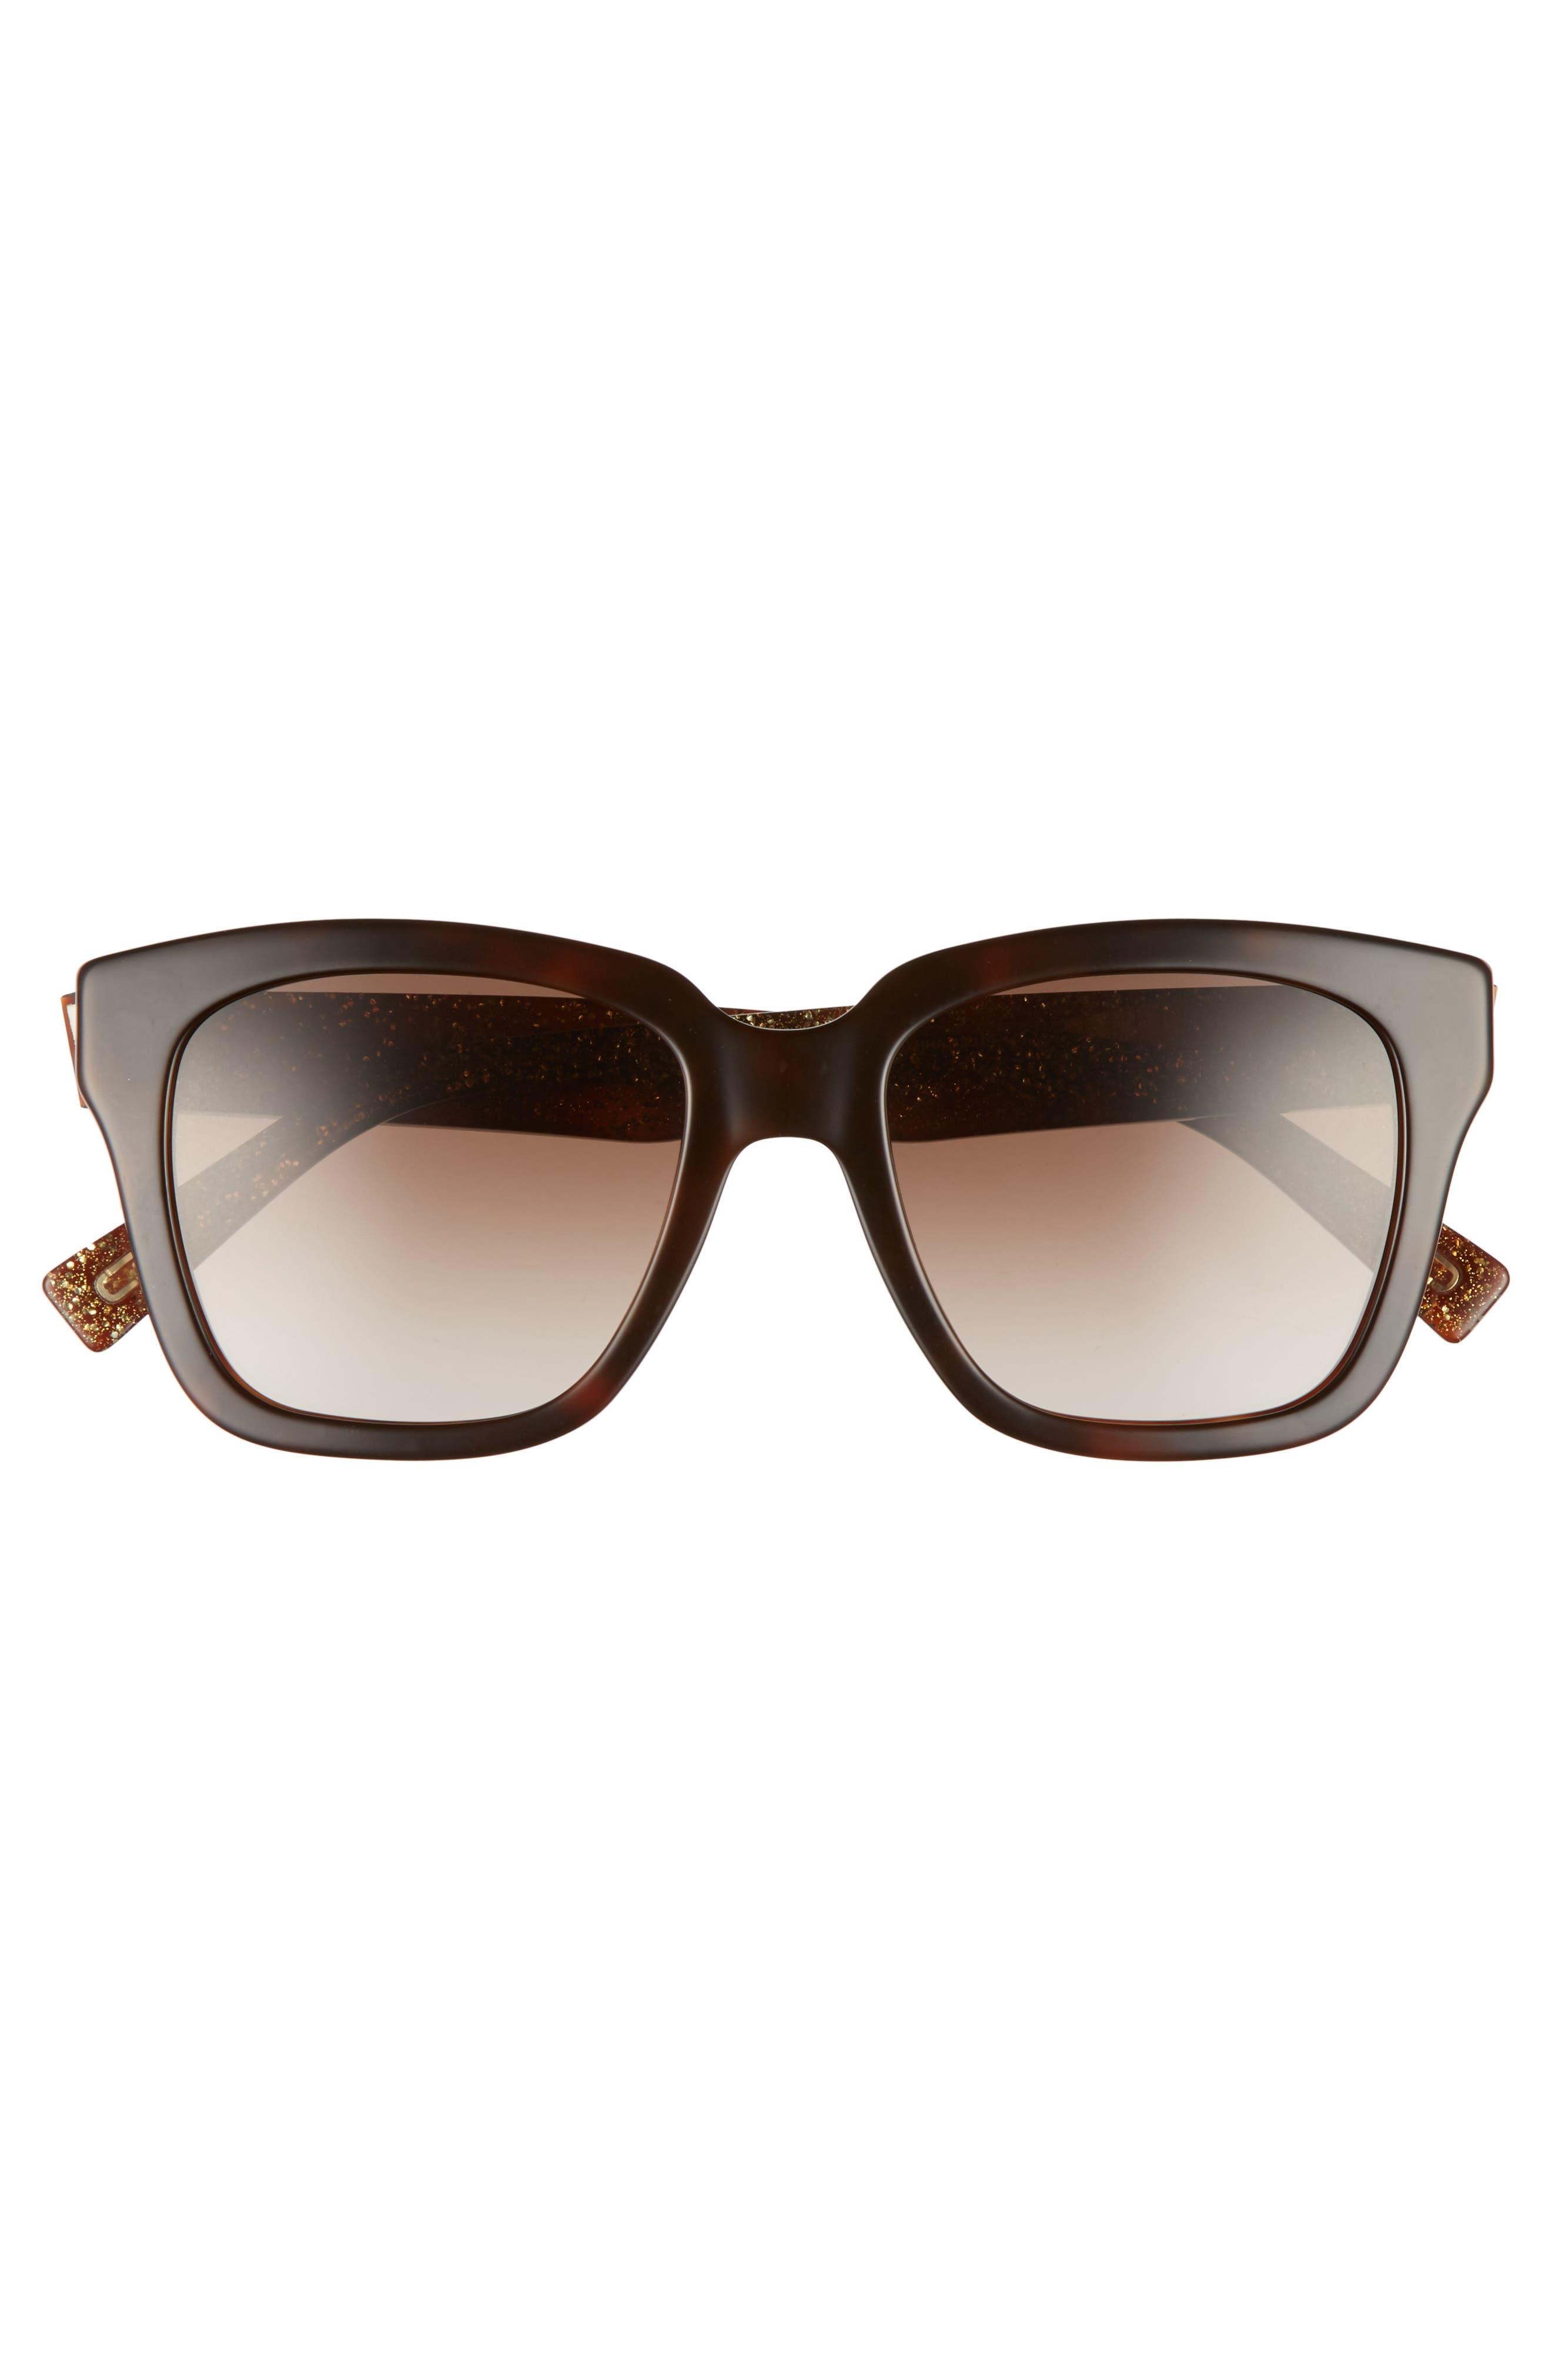 ,                             52mm Square Sunglasses,                             Alternate thumbnail 3, color,                             HAVANNA BROWN/ GOLD